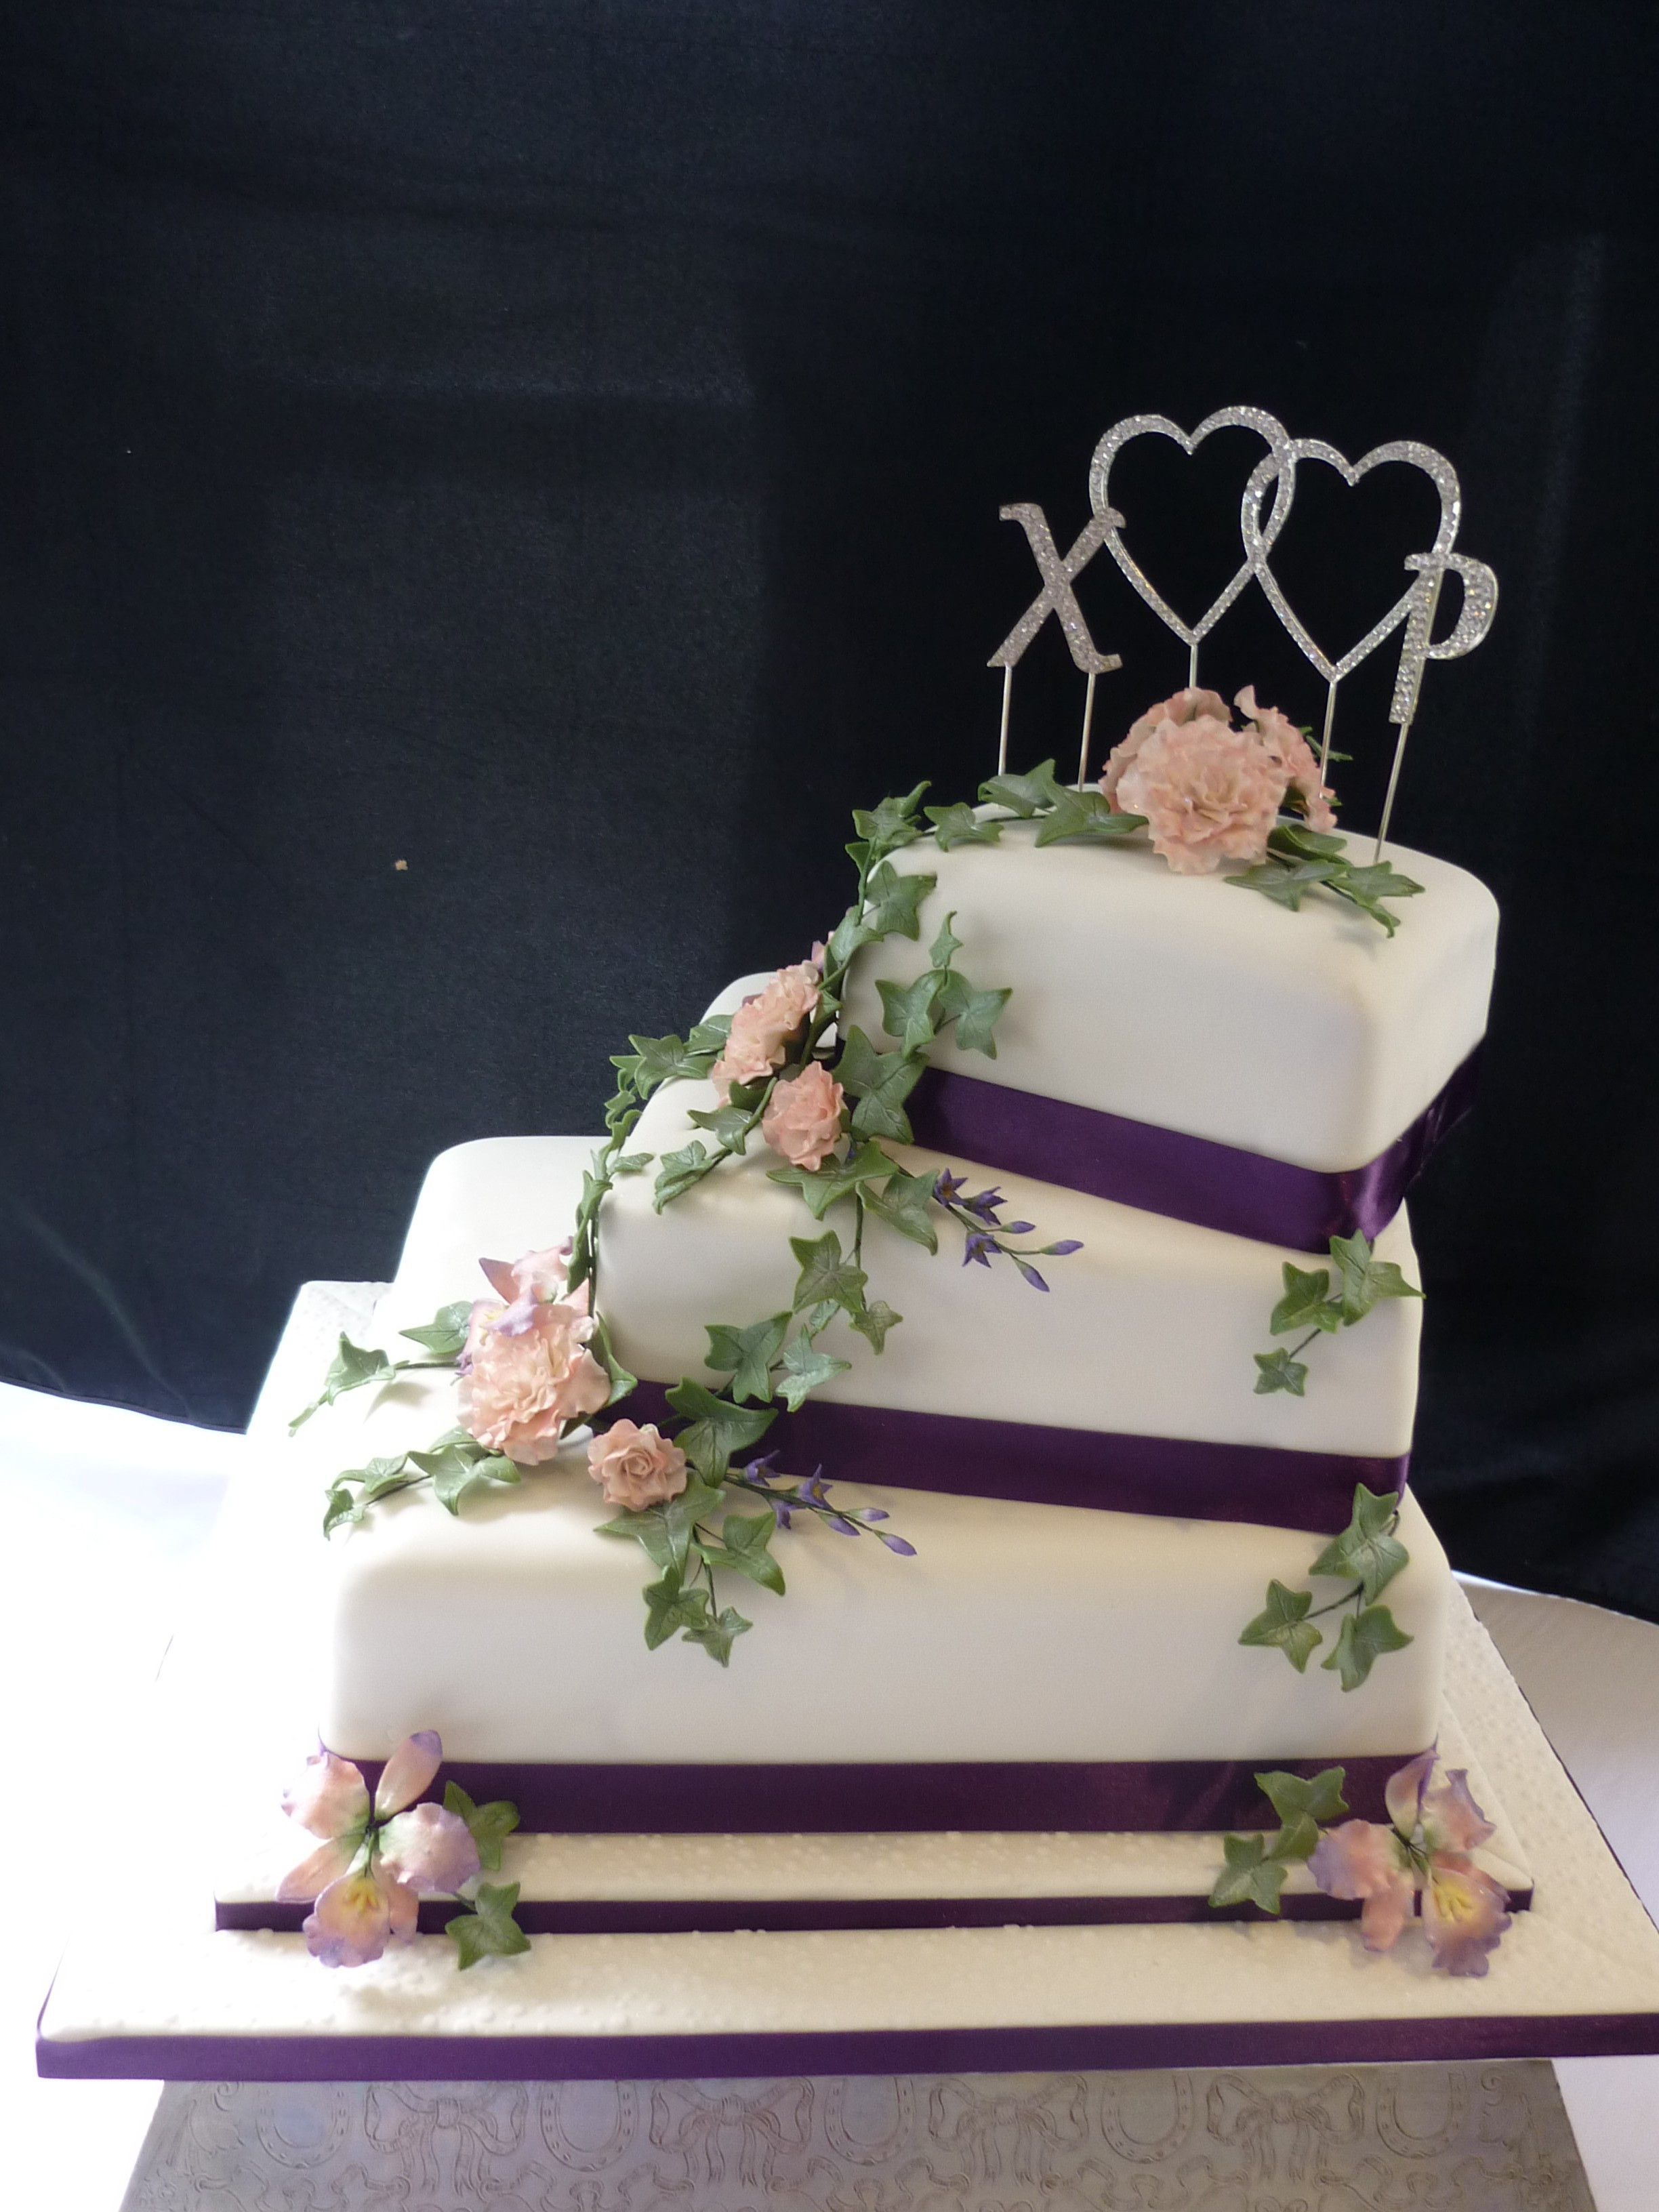 Three Tear Wedding Cakes  3 tier square orchid and rose wedding cake